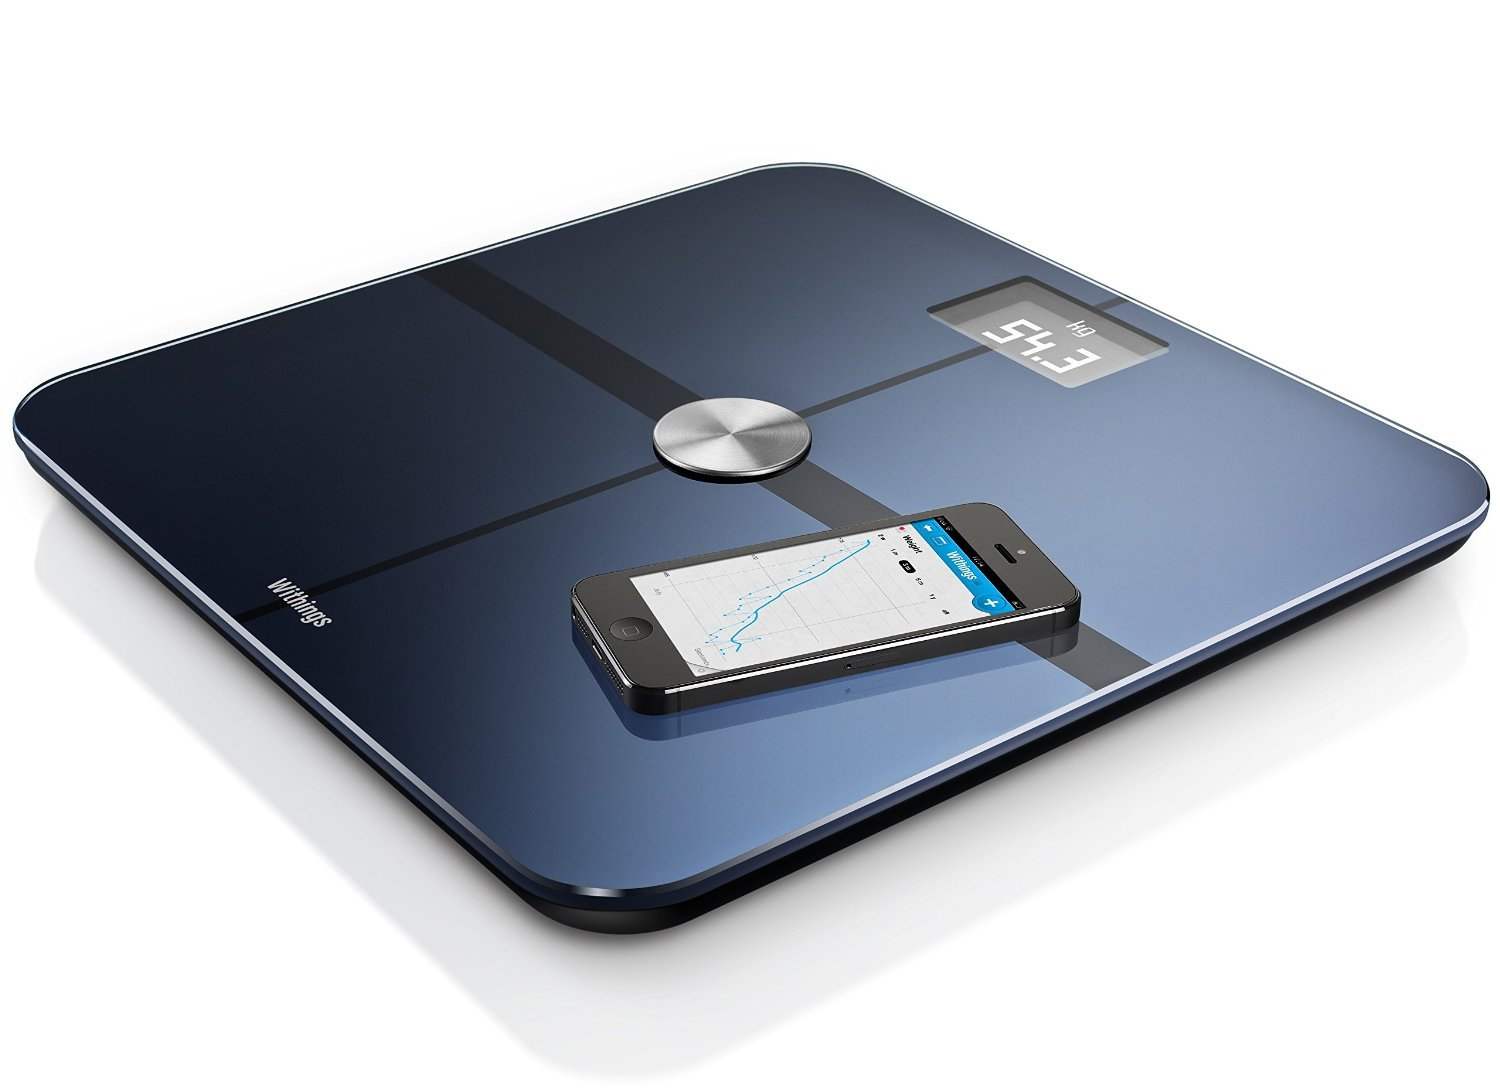 iphone accessories, withings, withings scale, smart scale, fitness